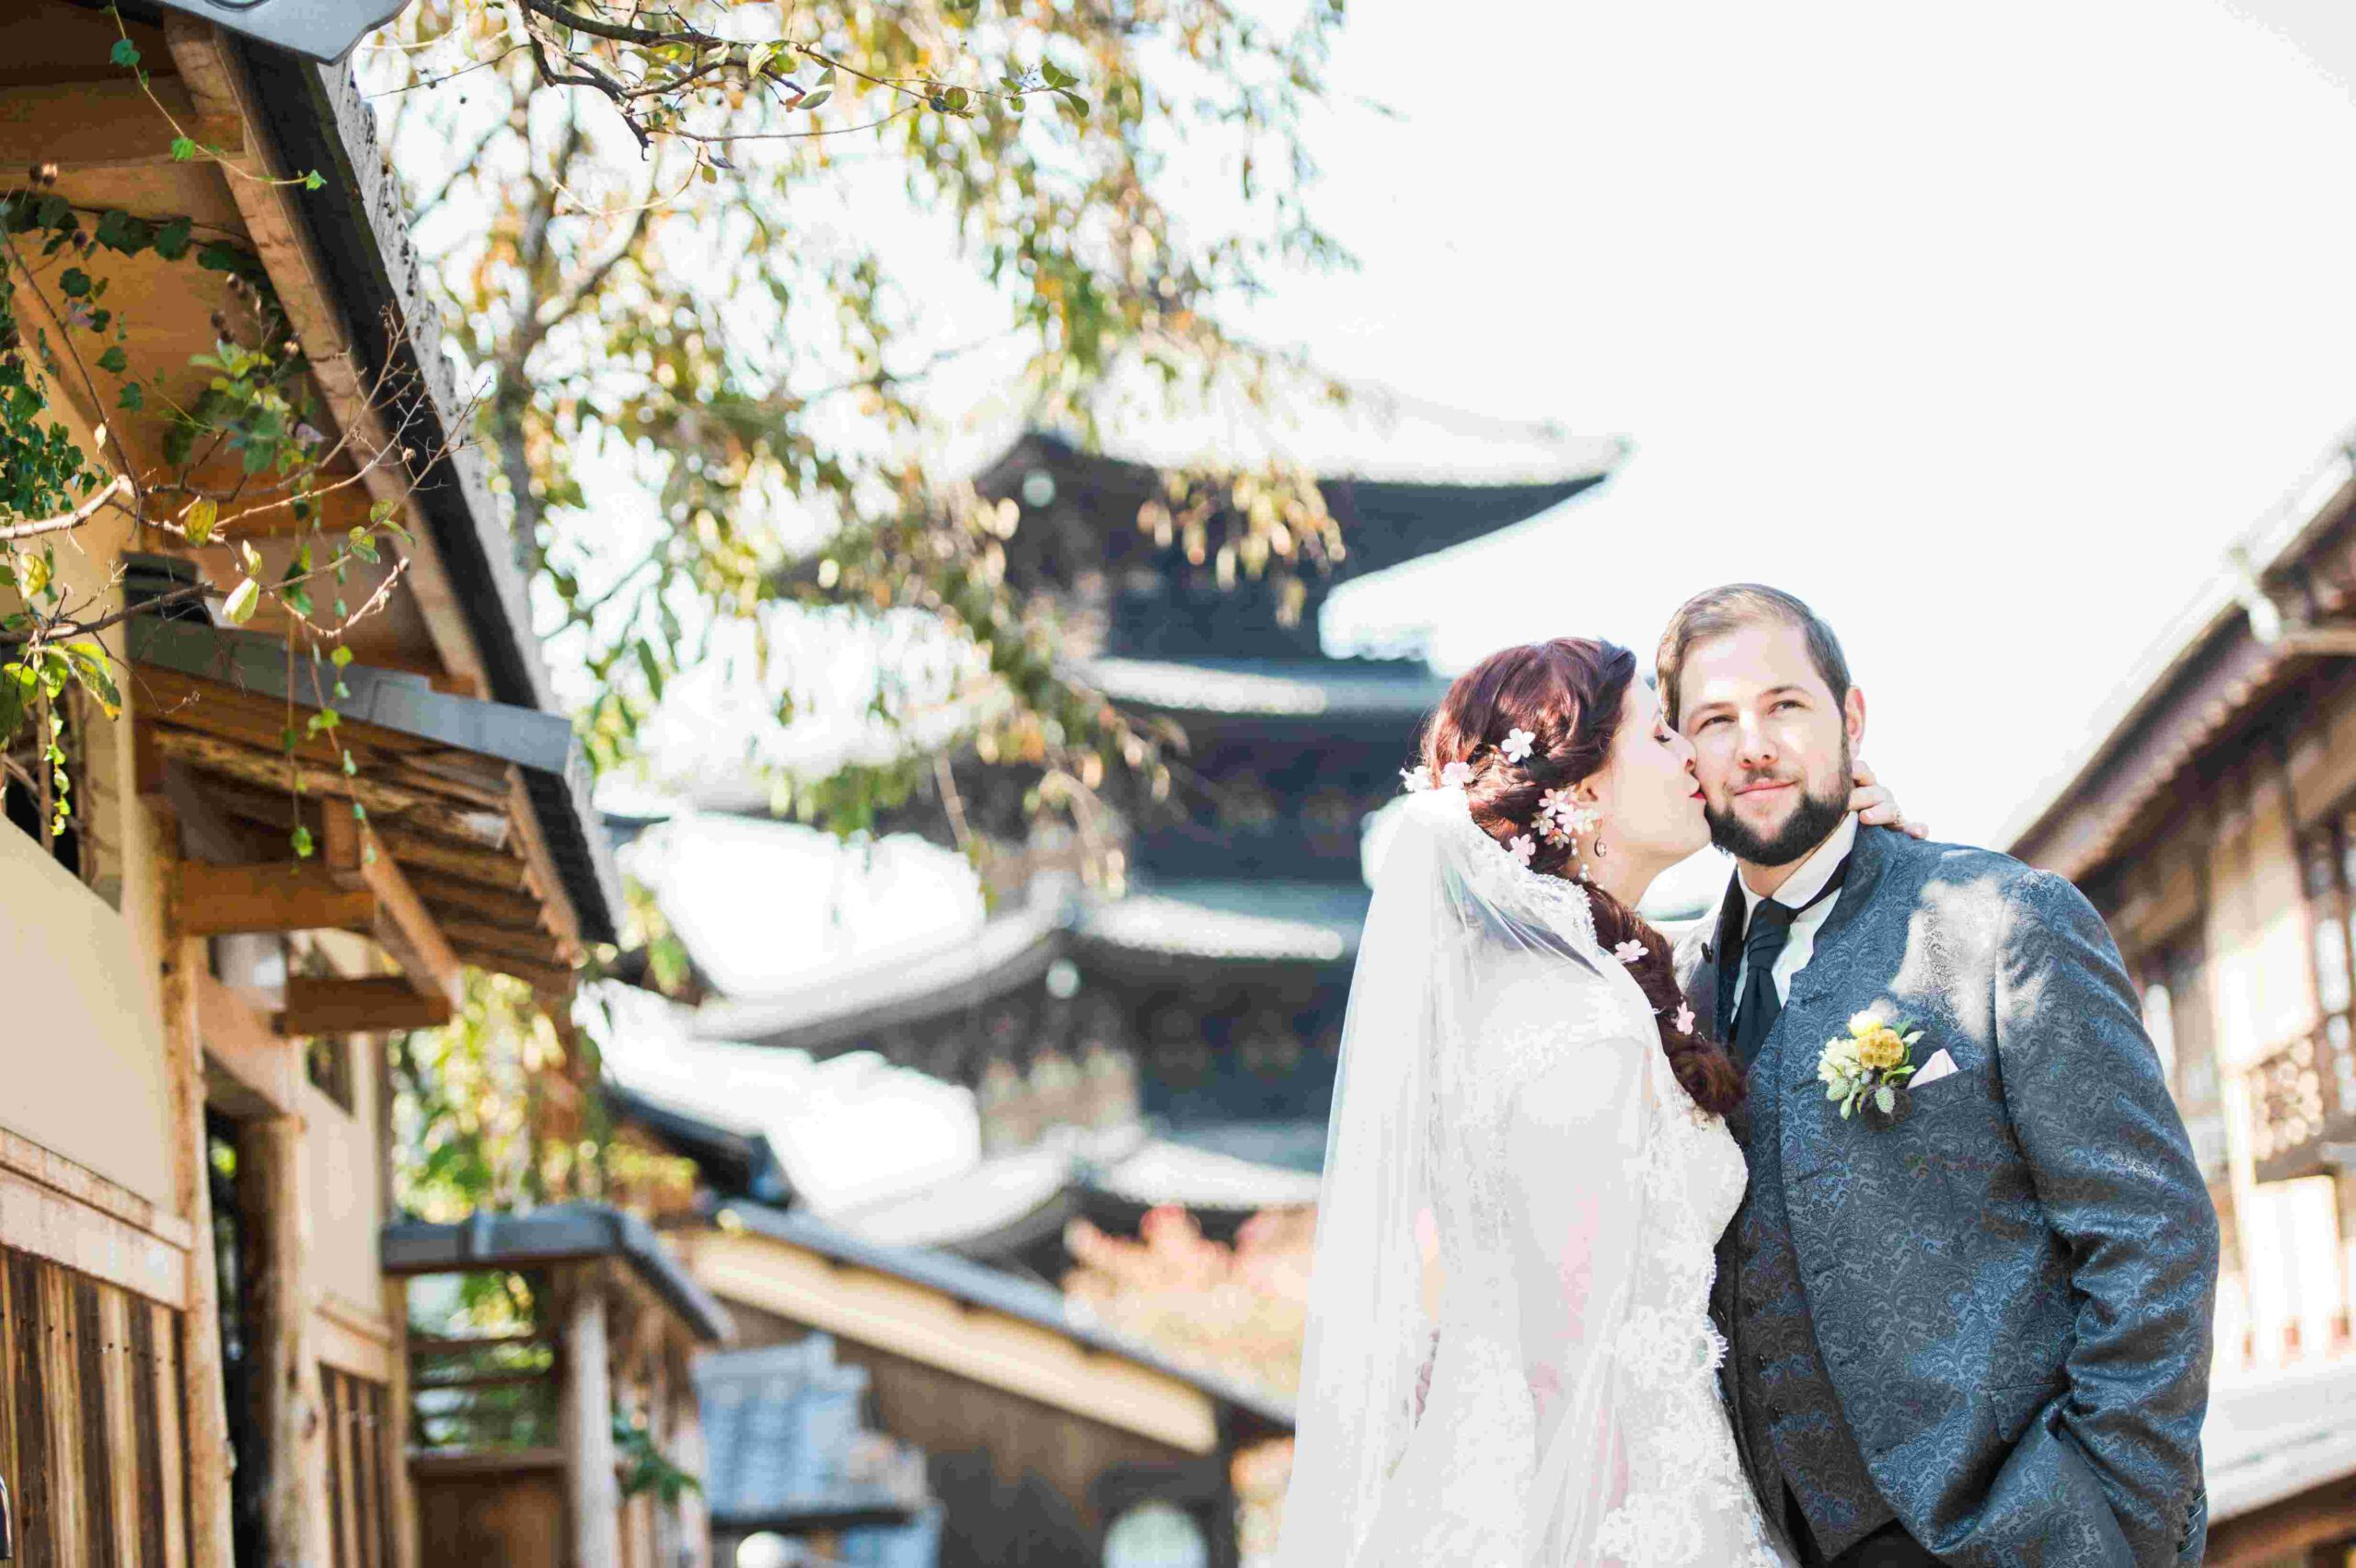 After Wedding Shooting in Kyoto